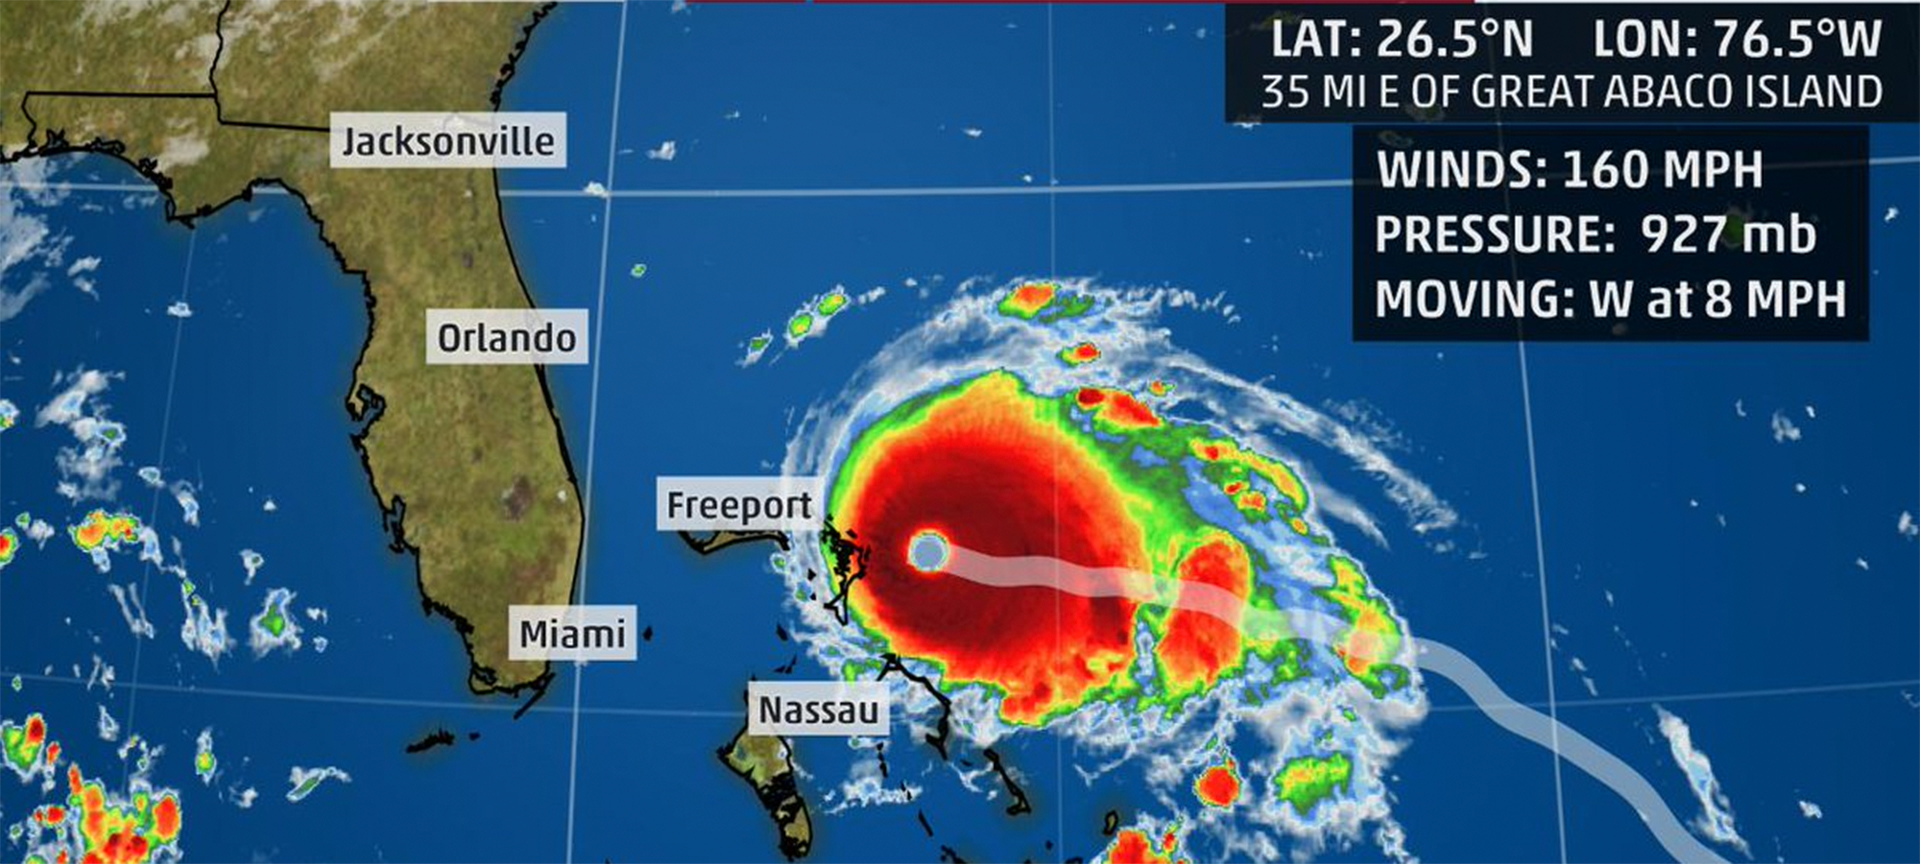 Hurricane Dorian was an extremely powerful and devastating Category 5 Atlantic hurricane, that became the most intense tropical cyclone on record to strike the Bahamas. In preparation for the storm, the state of Florida declared a state of emergency and many coastal counties from Florida to North Carolina issued mandatory evacuation orders.